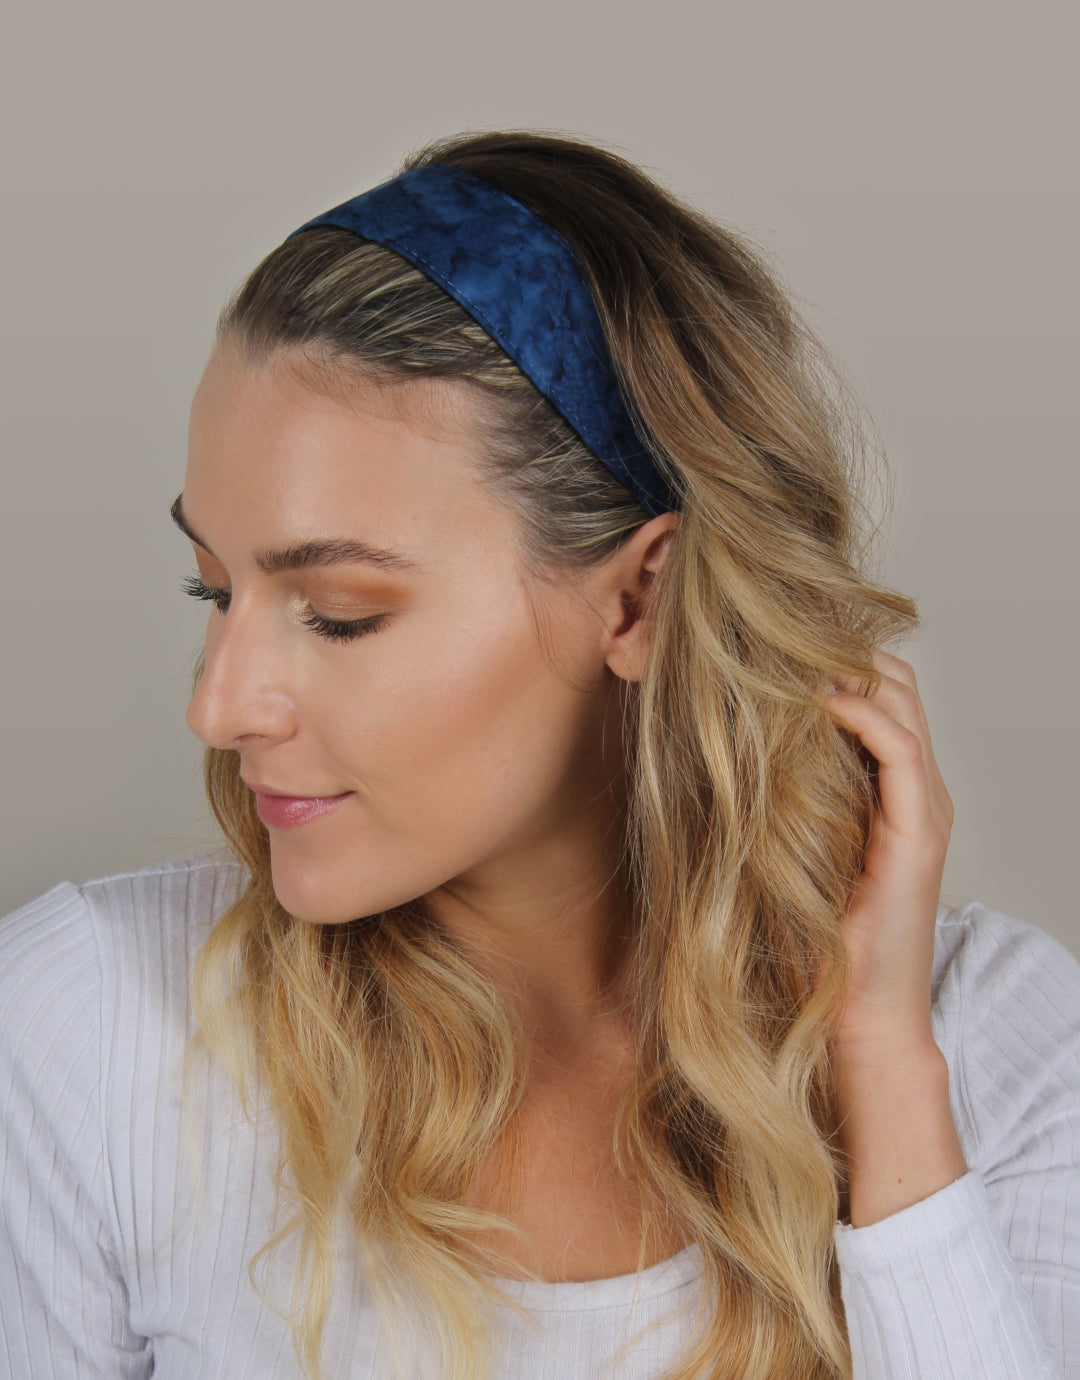 BANDED Women's Premium Headbands + Hair Accessories - Indigo Marble - Wide Headband